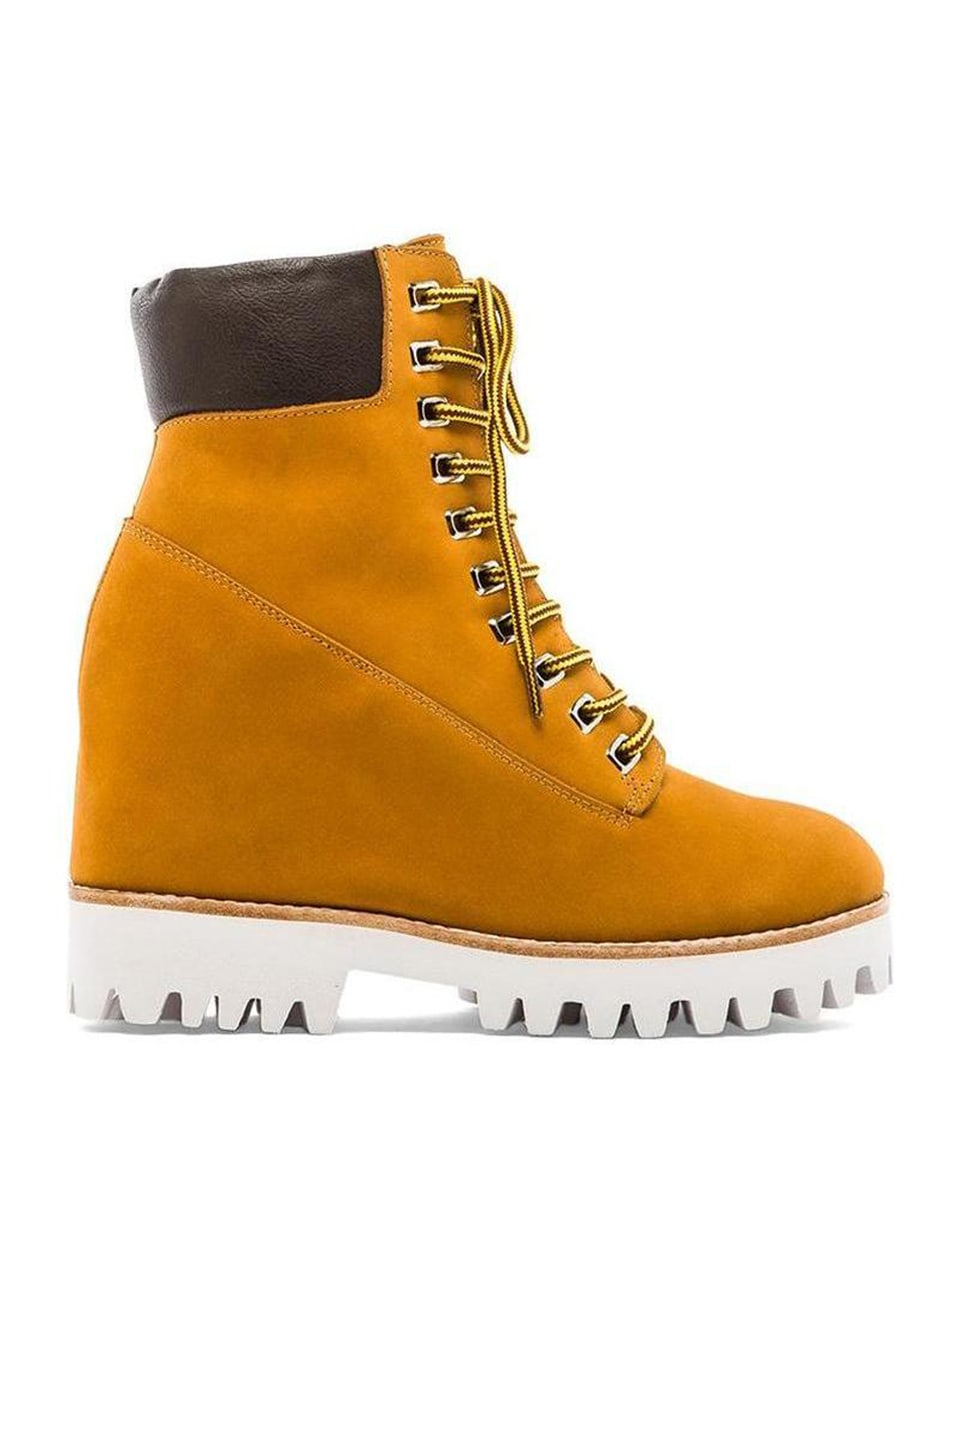 Jeffrey Campbell Wallace Sneakers in Wheat